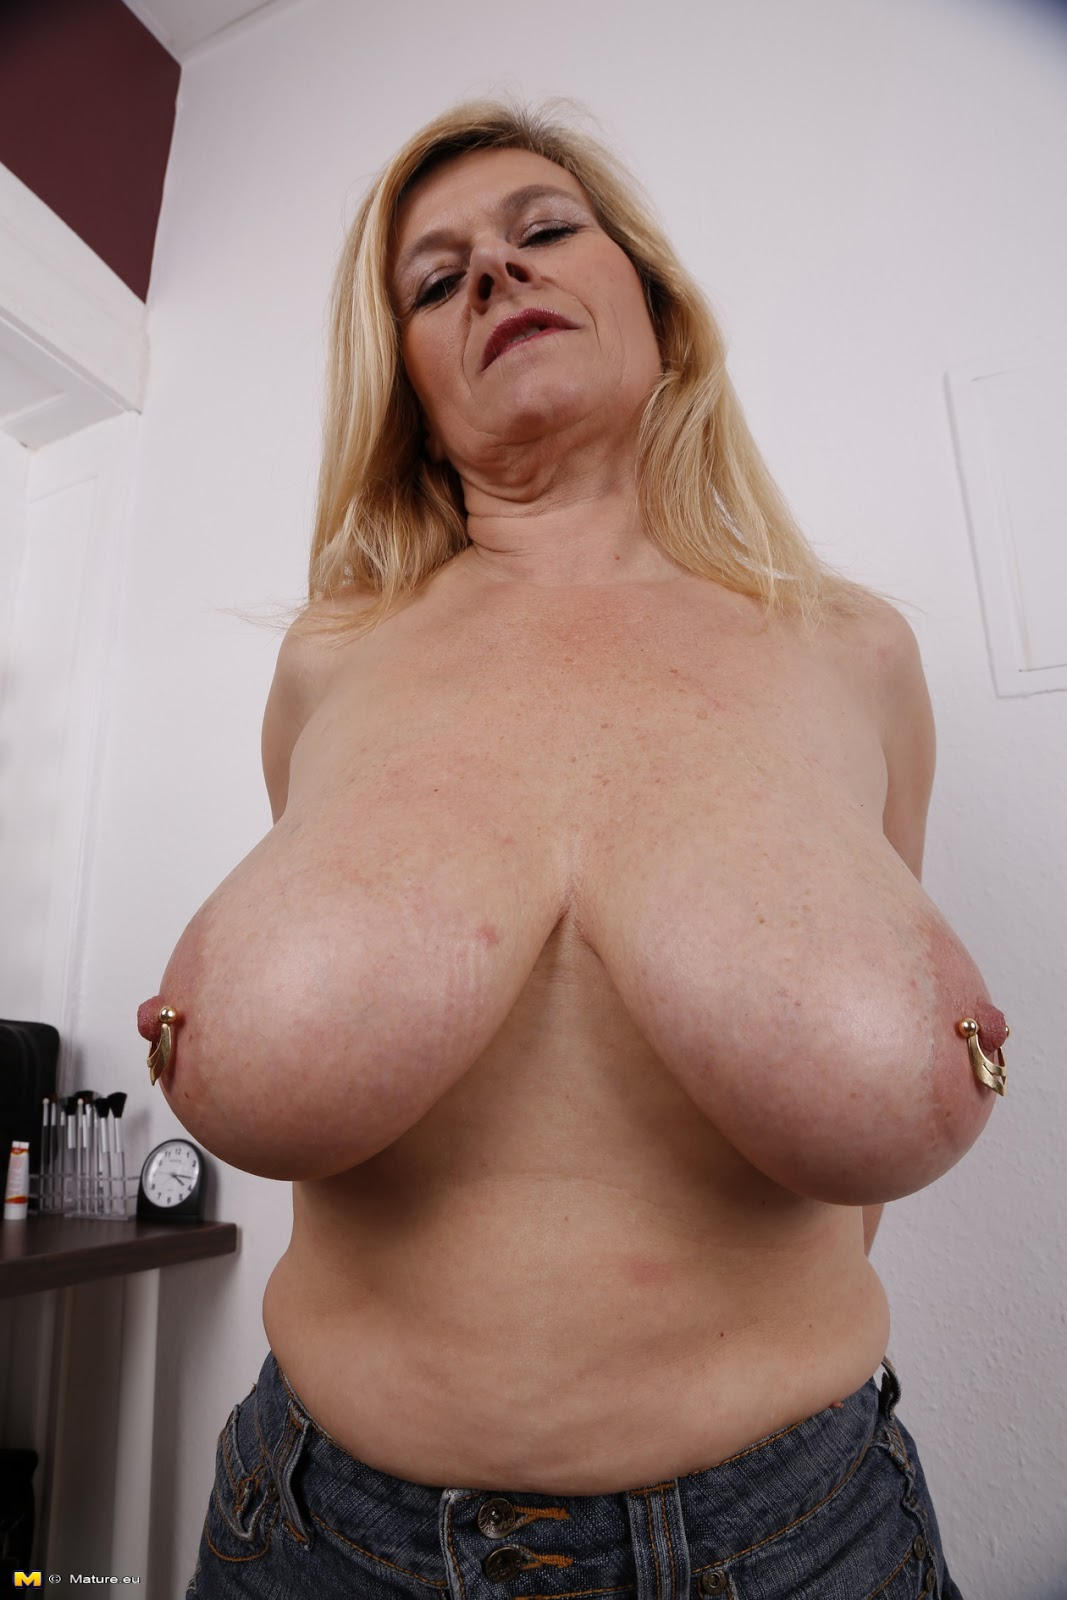 archive of old women .com: Big Breasted Pierced German Woman Solo